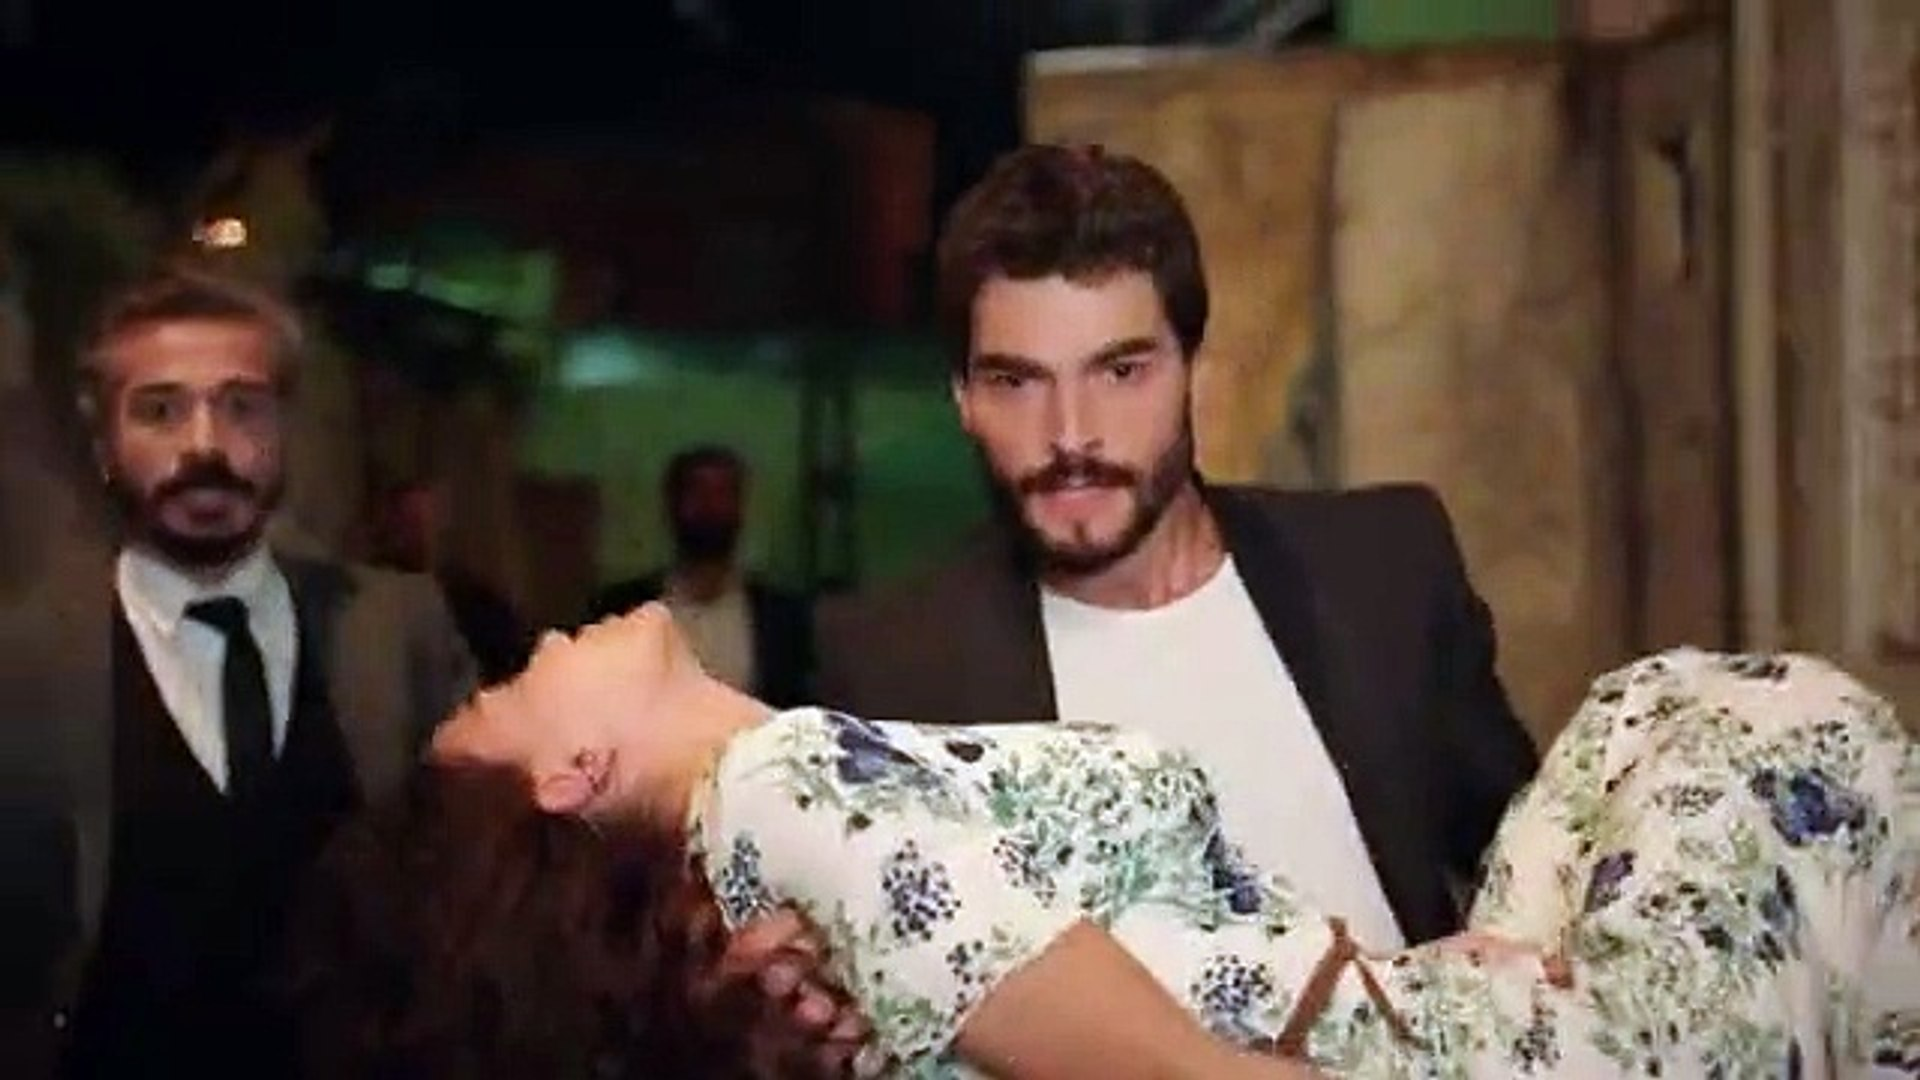 Hercai Capitulo 56 Completo Hercai Capitulo 56 Completo Hercai Capitulo 56 Completo Hercai Capitulo 56 Completo Video Dailymotion